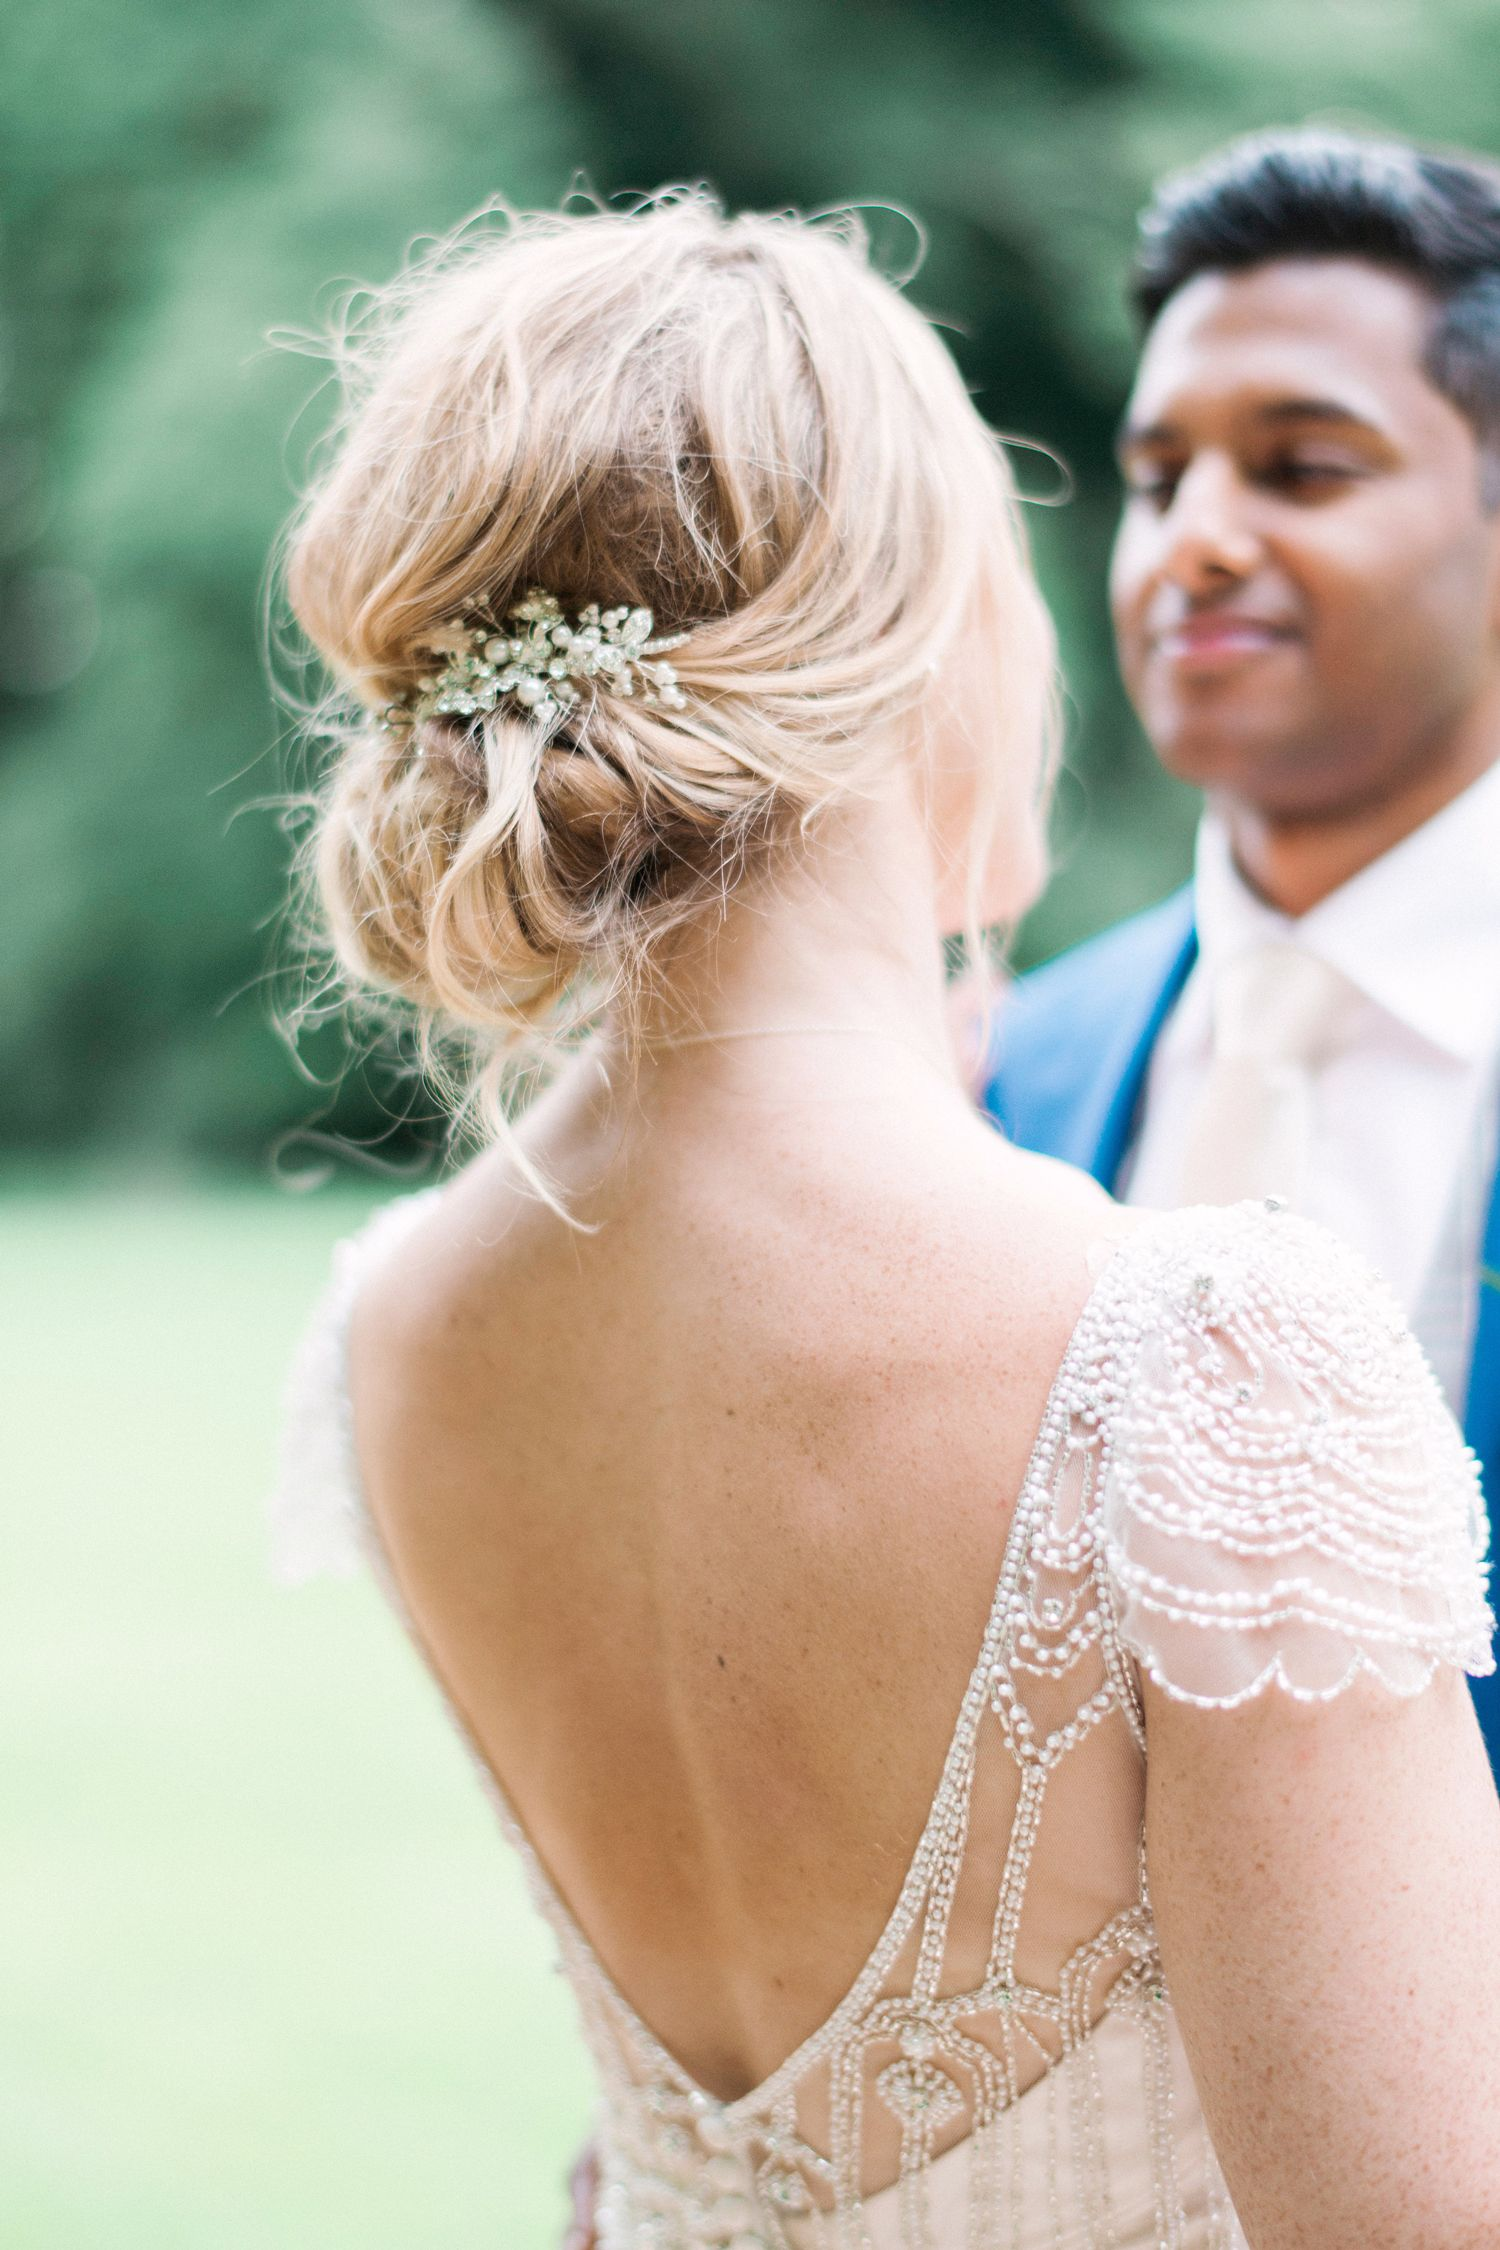 Real Wedding An Elegant Day At Holkham Hall With A Maggie Sottero